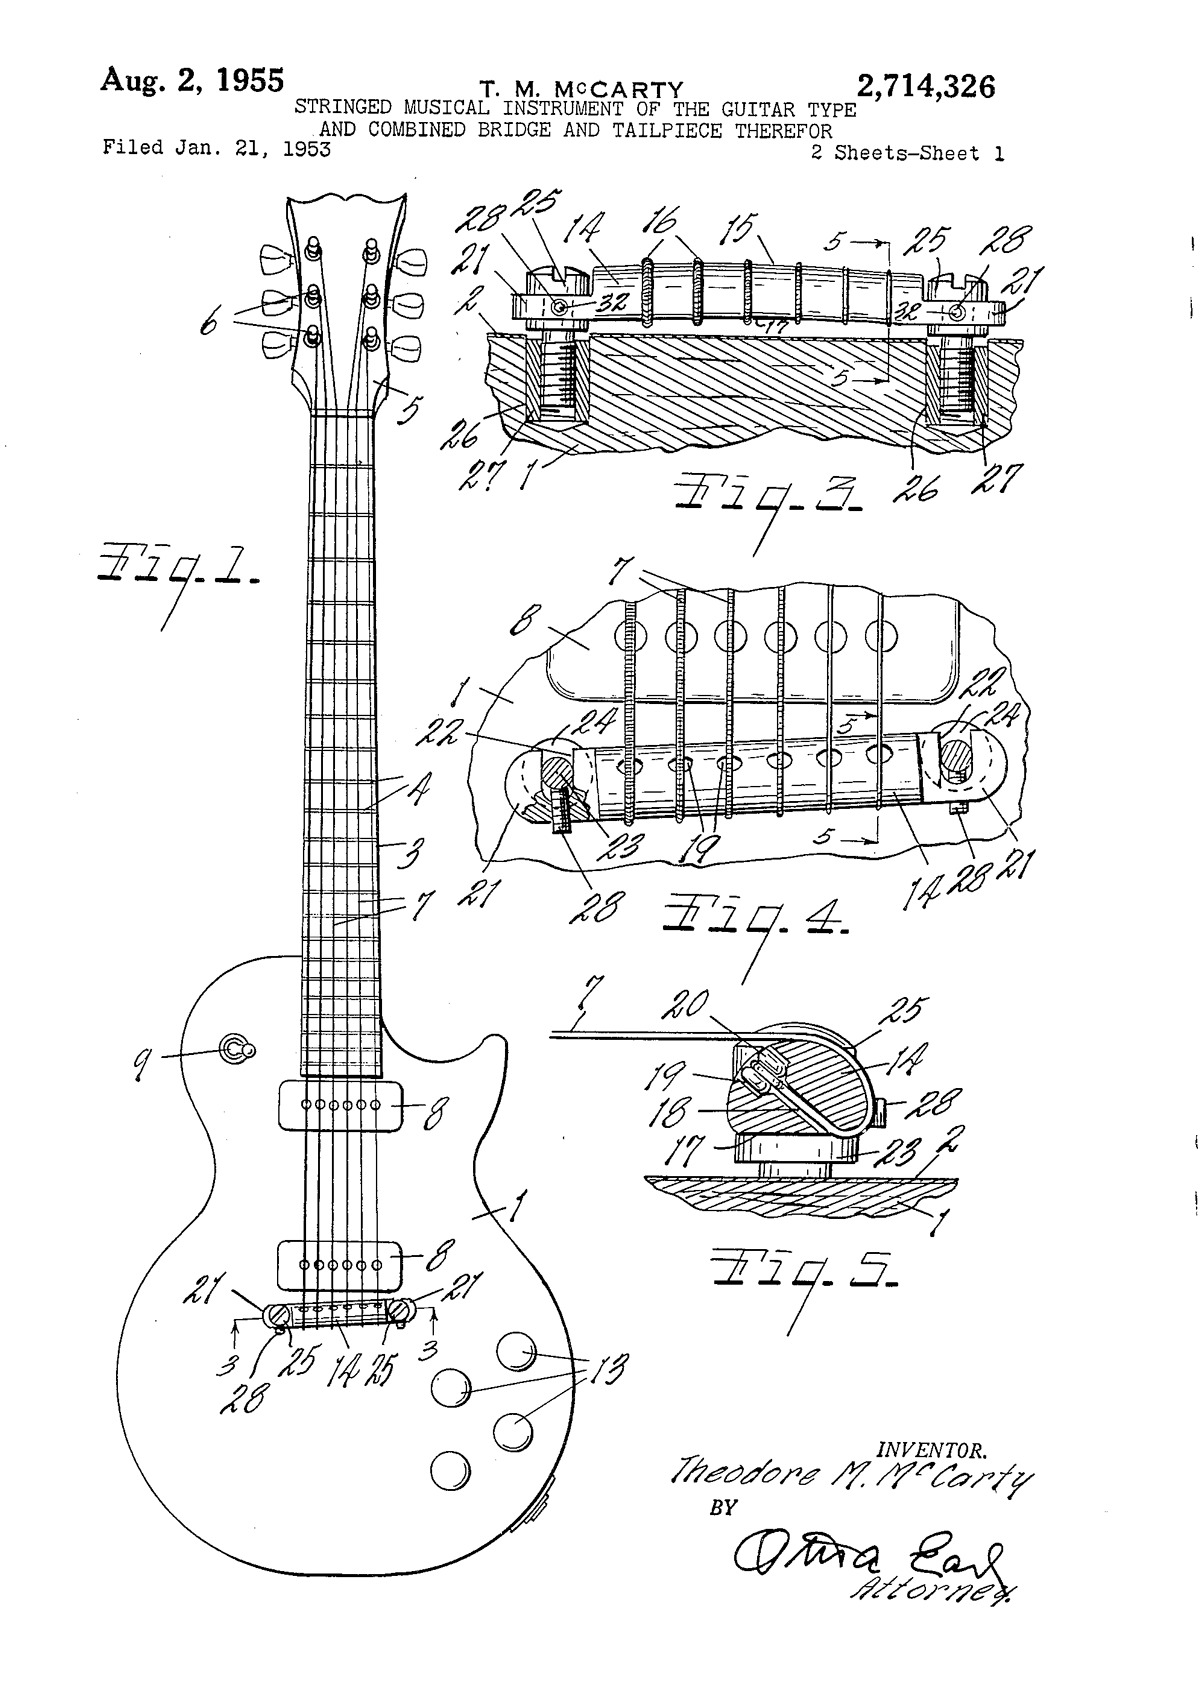 Stringed musical instrument of the guitar type and combined bridge and tailpiece therefor